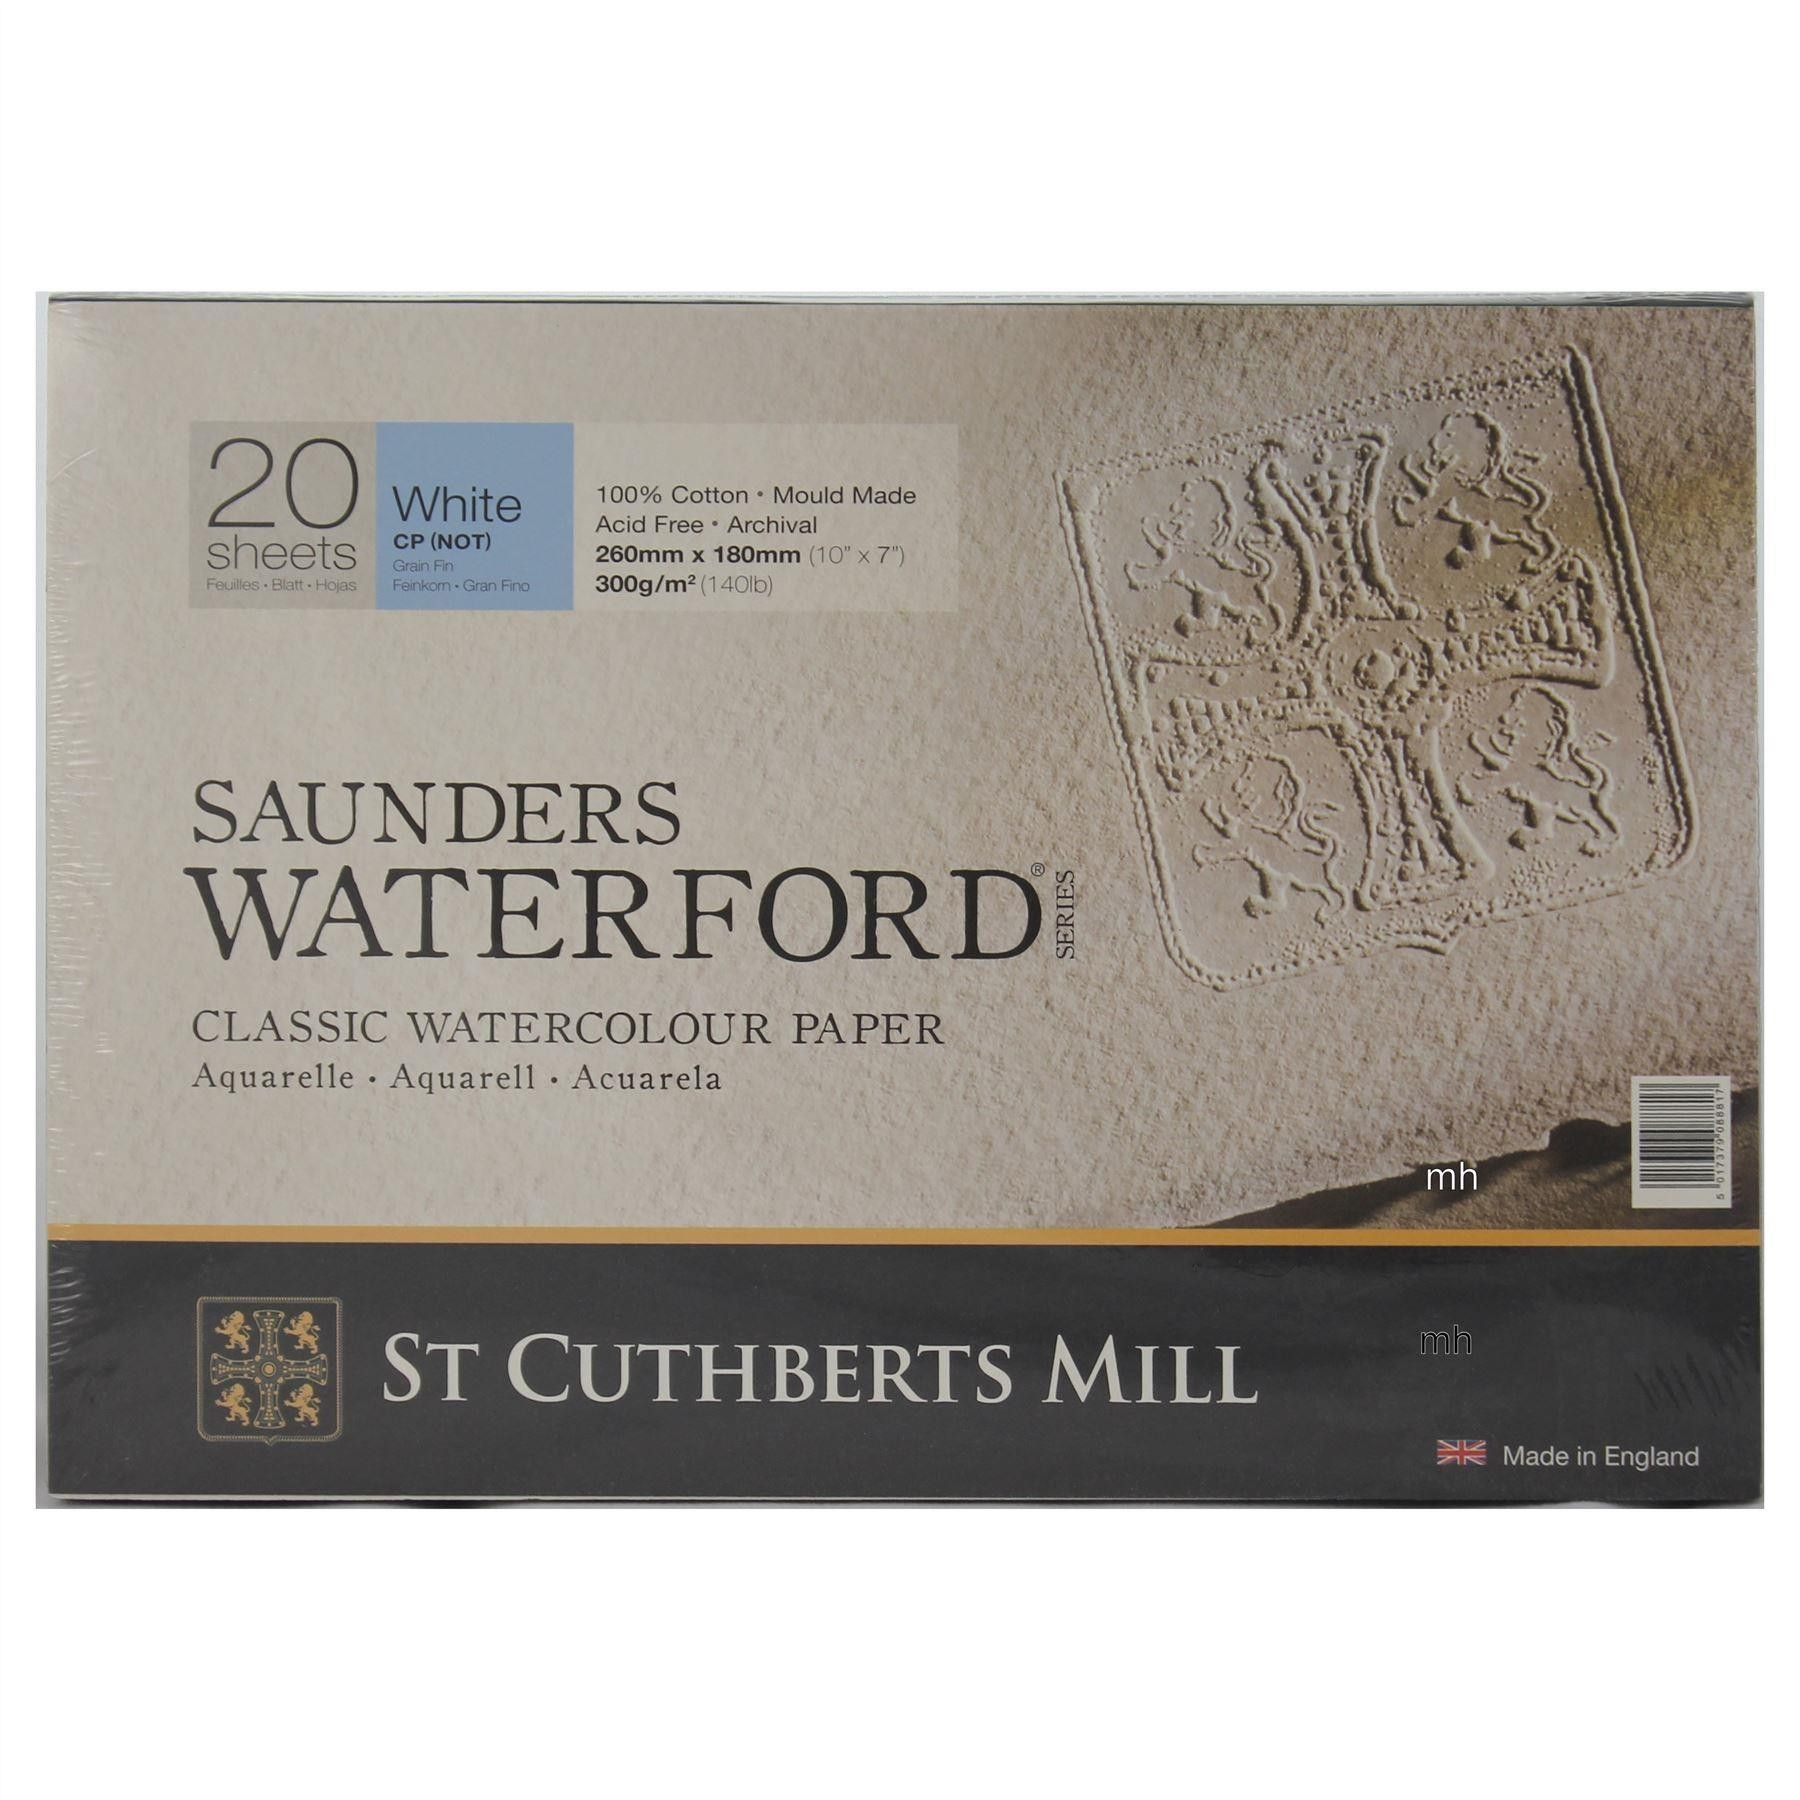 Saunders Waterford Cold Press Classic Watercolour Paper Blocks